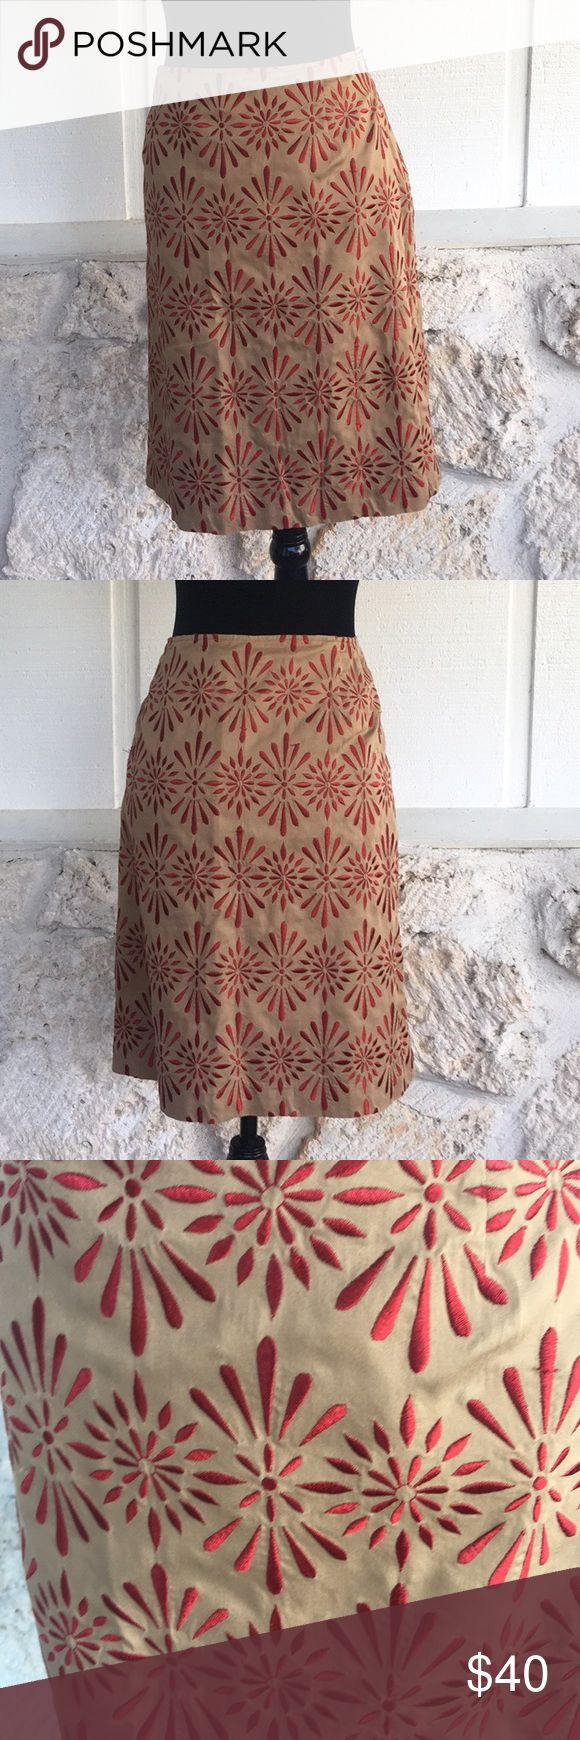 "Talbots tan & rust embroidered pencil skirt Talbot's tan pencil skirt embroidered with rust colored design. Skirt is absolutely gorgeous! EUC Side zipper with hook and eye closure, there is no stretch to the material. measurements: waist measured laying flat side to side 16.5"" length from waist to hemline 22"" ✅I ship same or next day ✅Bundle for discount Talbots Skirts Pencil"